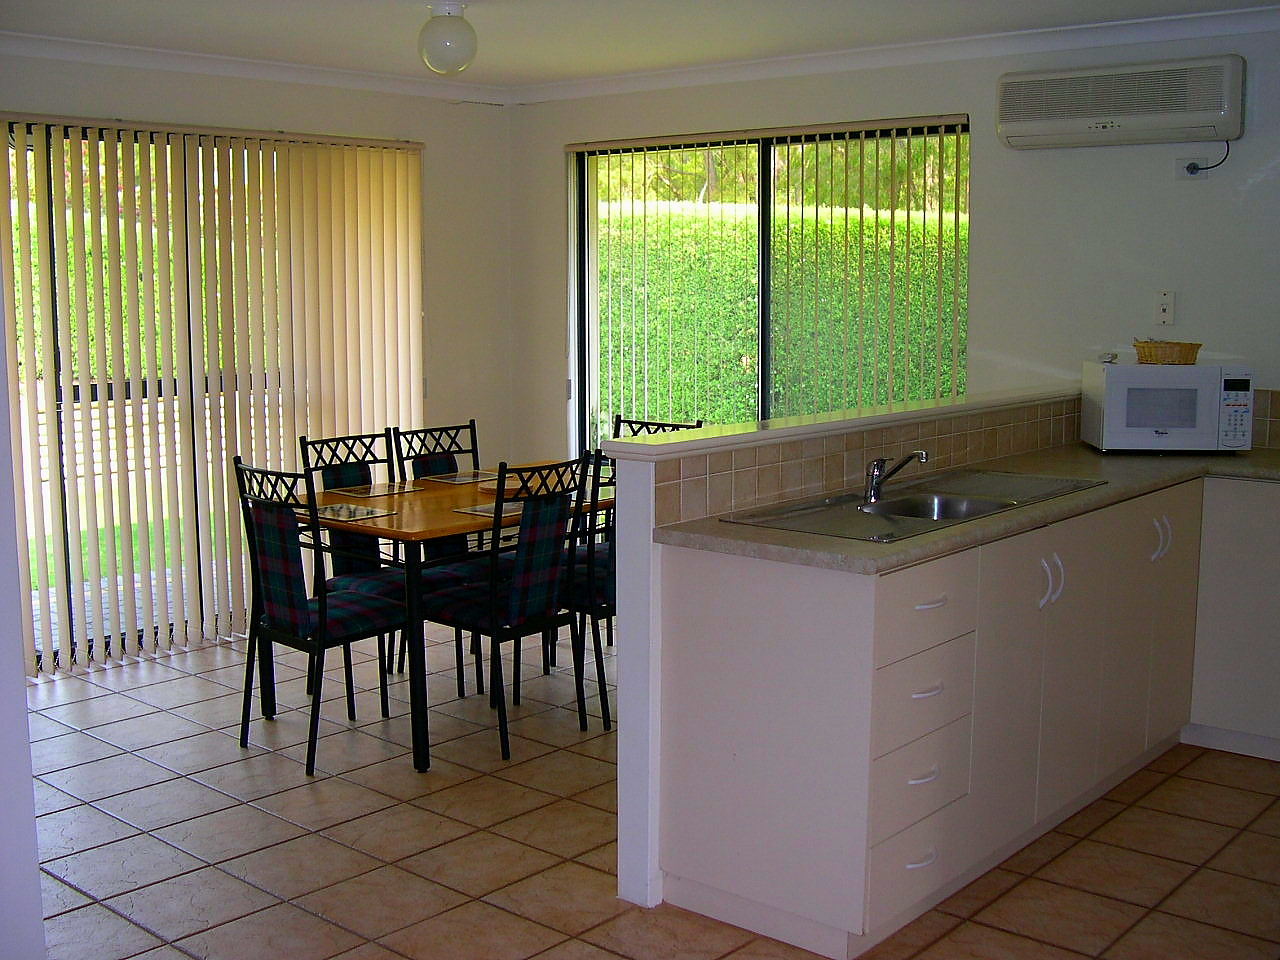 3 Bedroom Family Villa Kitchen